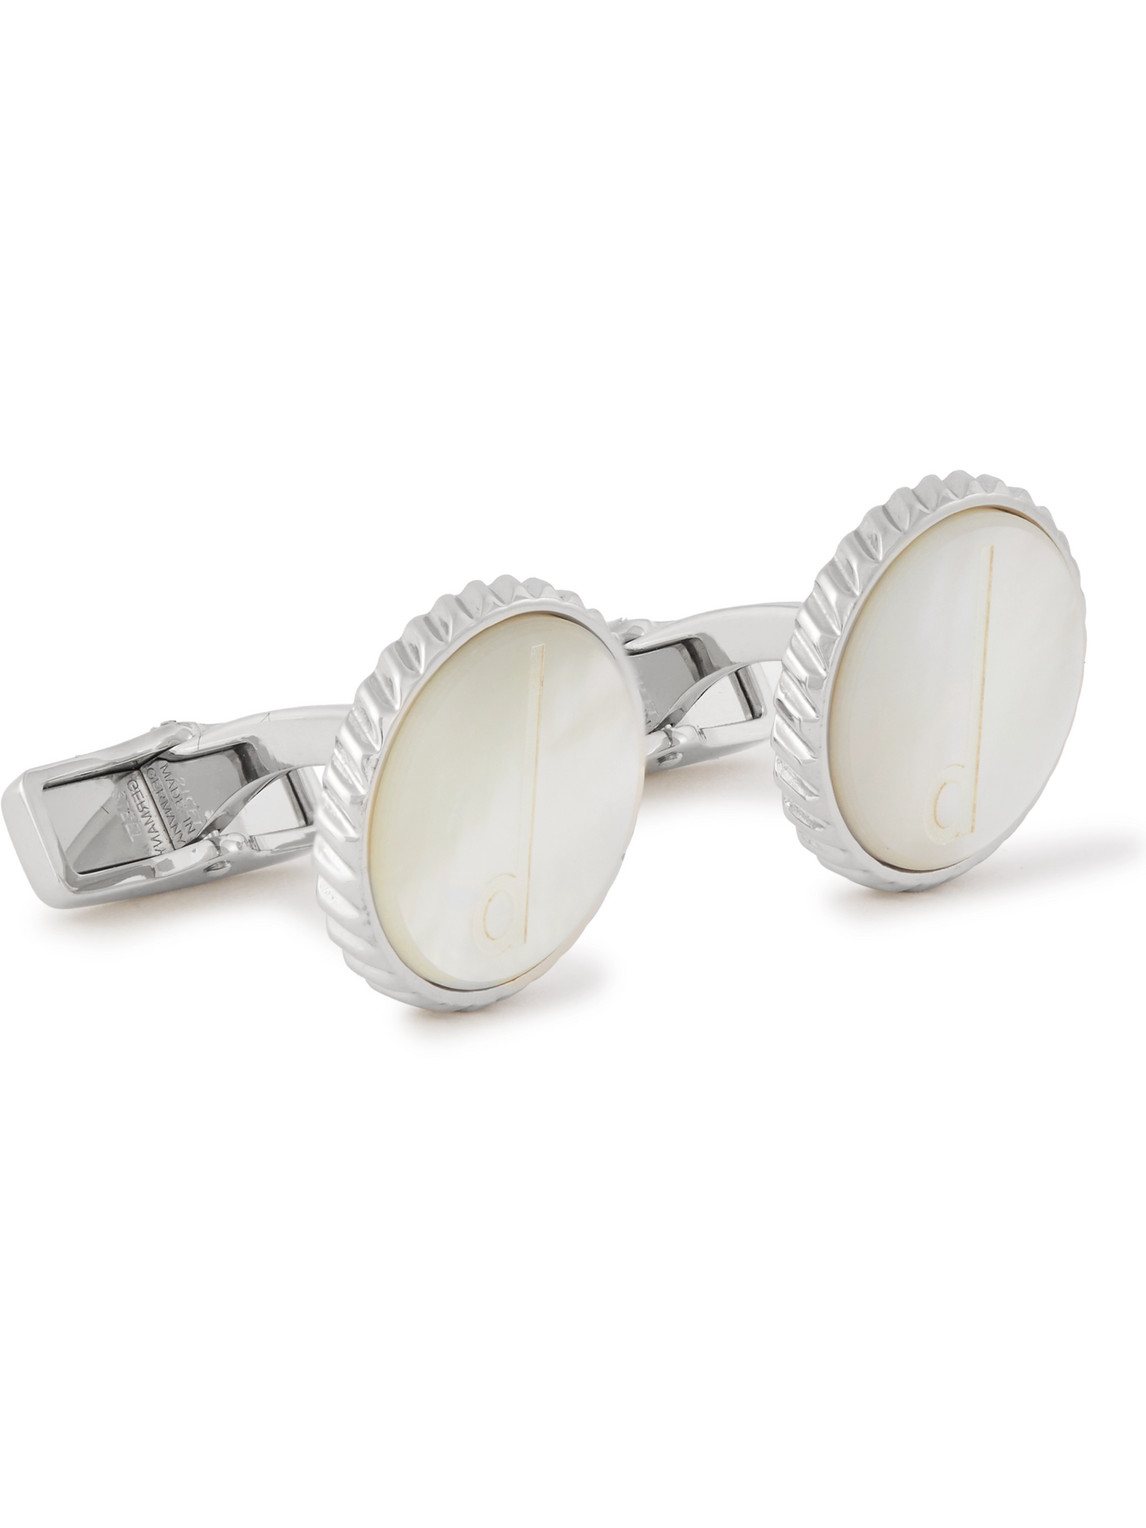 Dunhill Engraved Mother-of-pearl And Steel Cufflinks In Silver